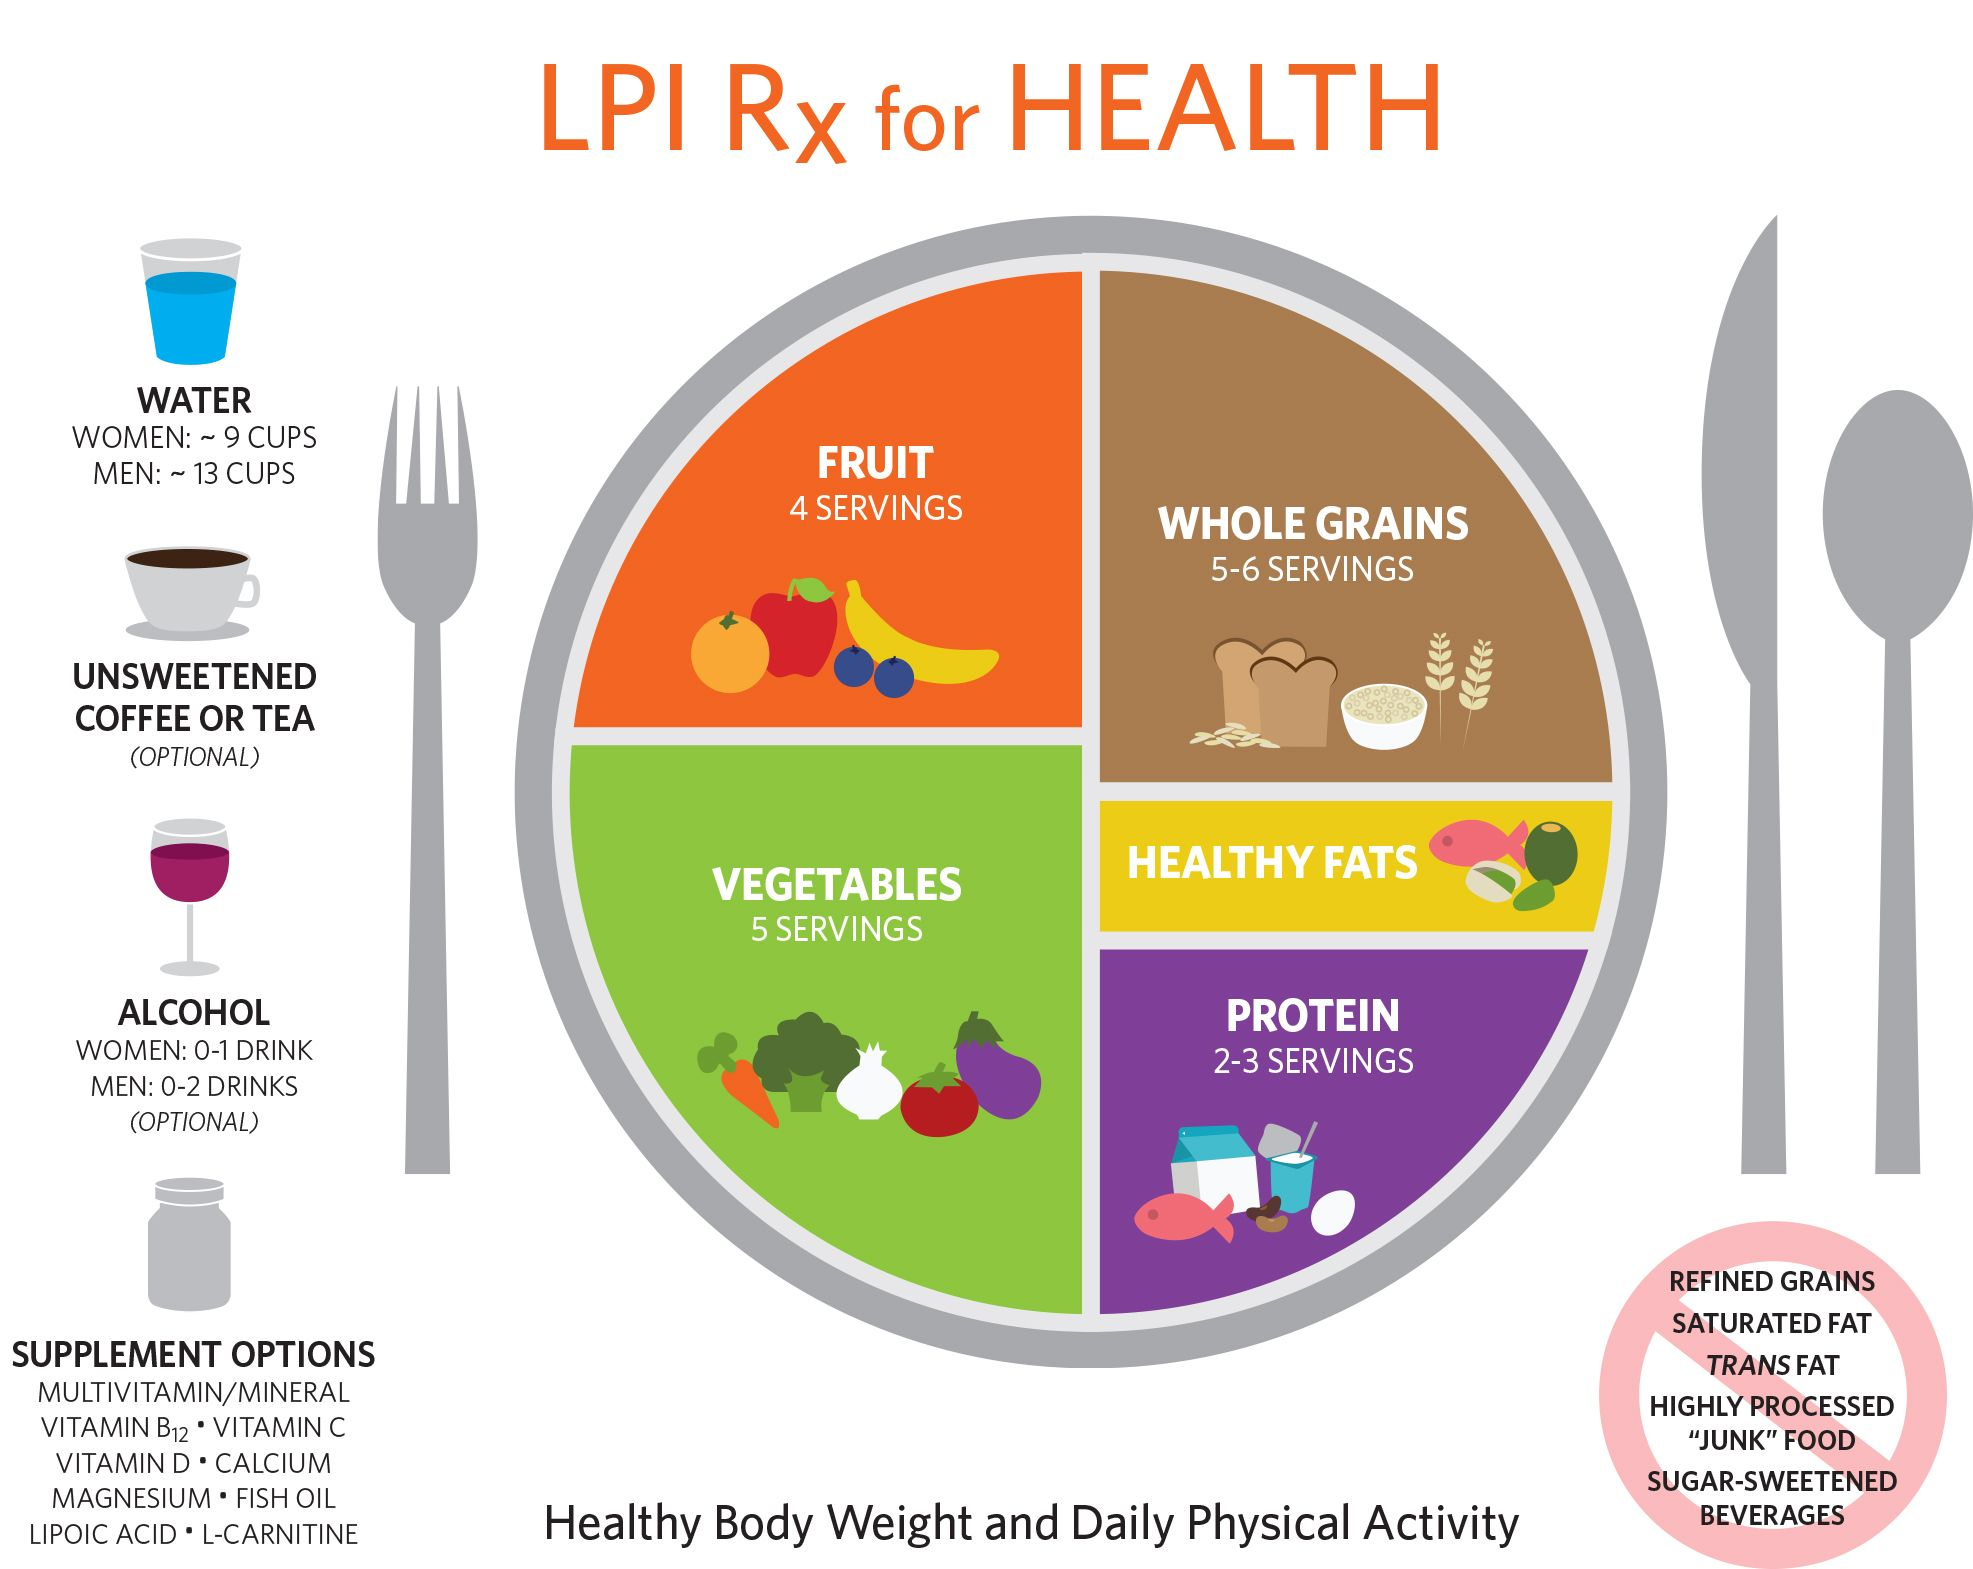 Rx for health linus pauling cardiovascular disease and heart lpi rx for health plate serving diagram for serving sizes see lpioregonstate pooptronica Gallery